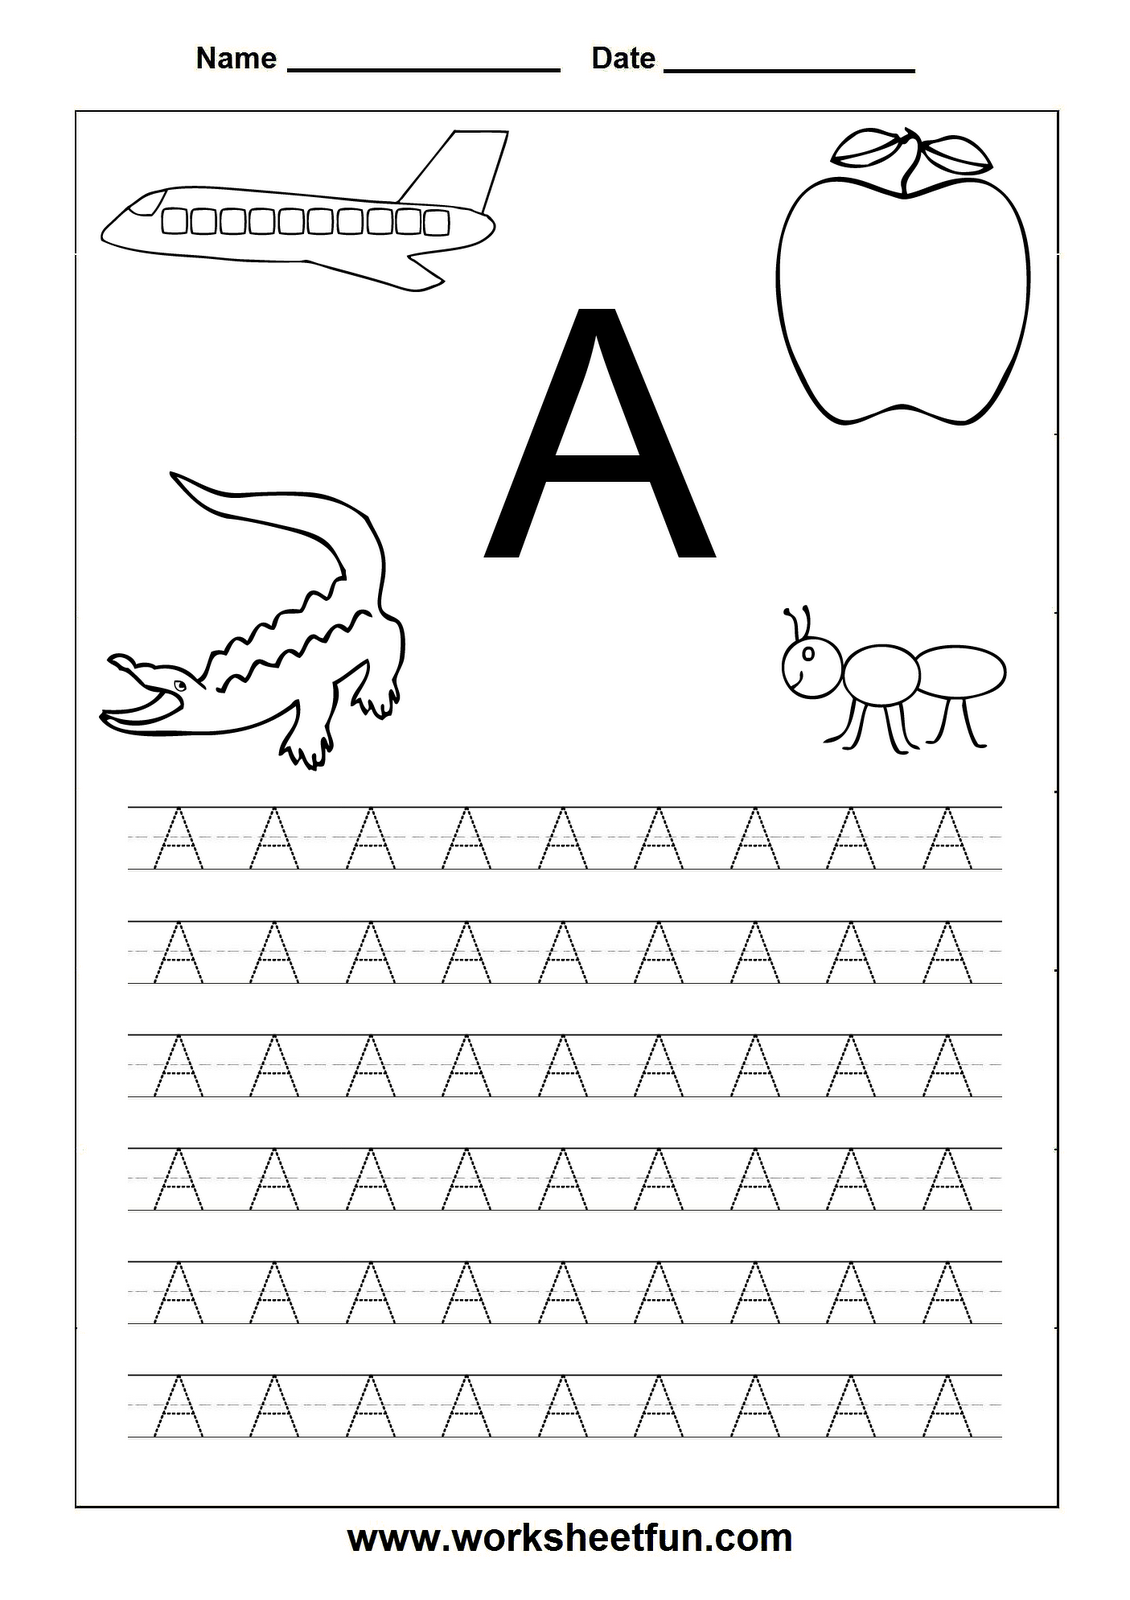 worksheet Letter Tracing Worksheet printables free printable preschool worksheets tracing letters letter s for a z